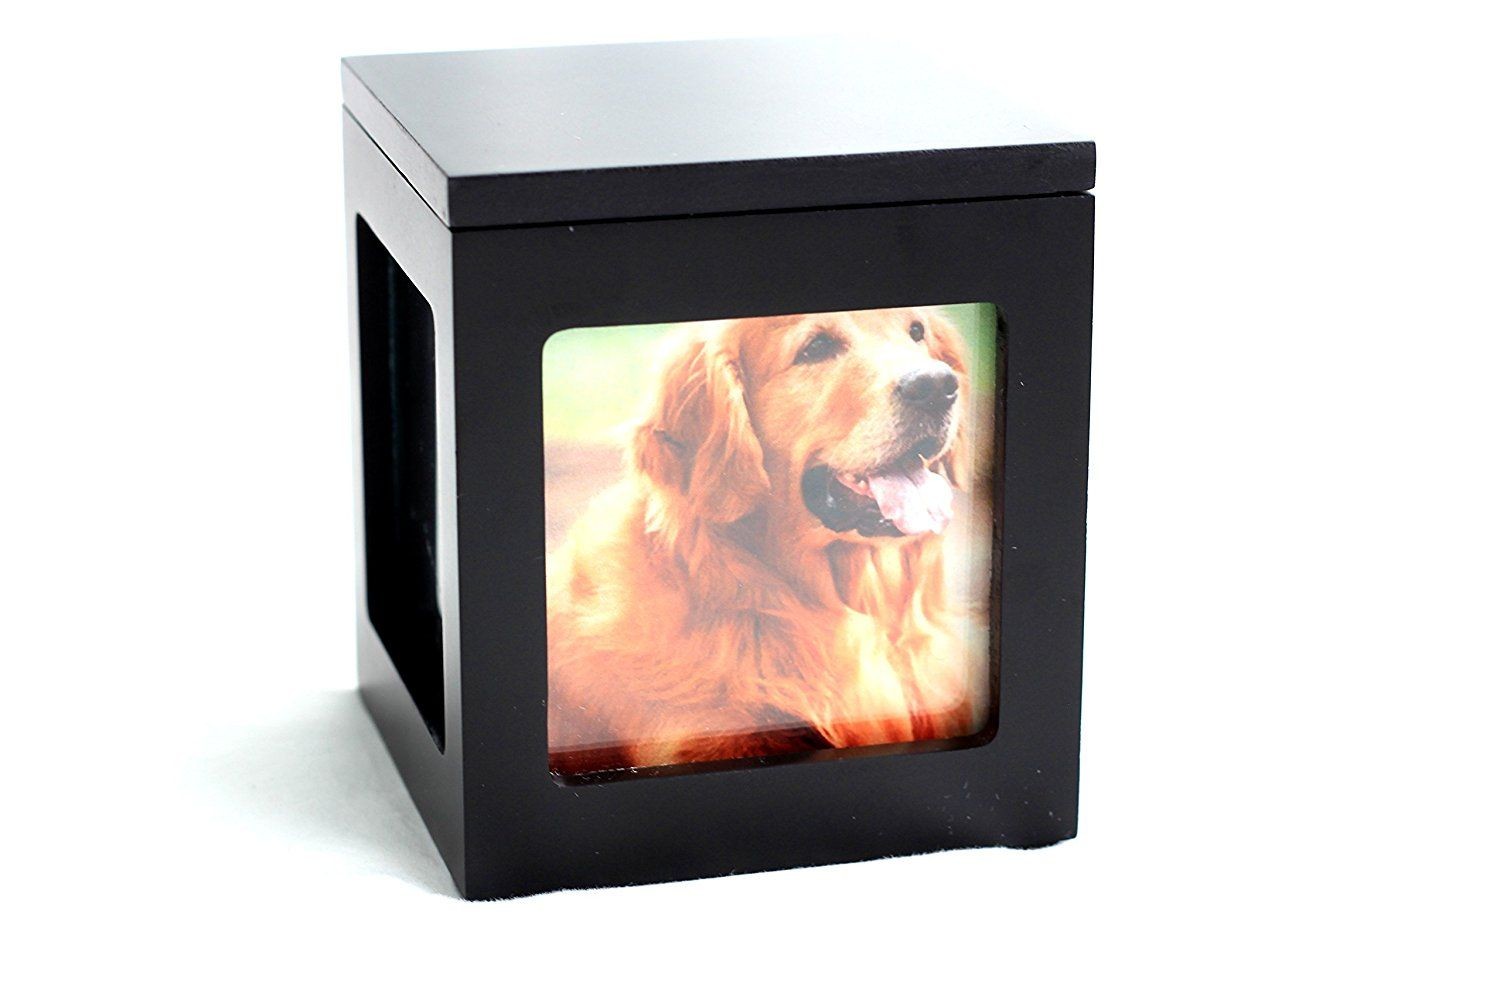 Amazon Com Heavenly Home Pet Keepsake Multiple Photo Cube Pet Urn For 1 To 4 Pictures Cremation Memorial For Pe Pet Keepsake Pet Cremation Pet Cremation Urns